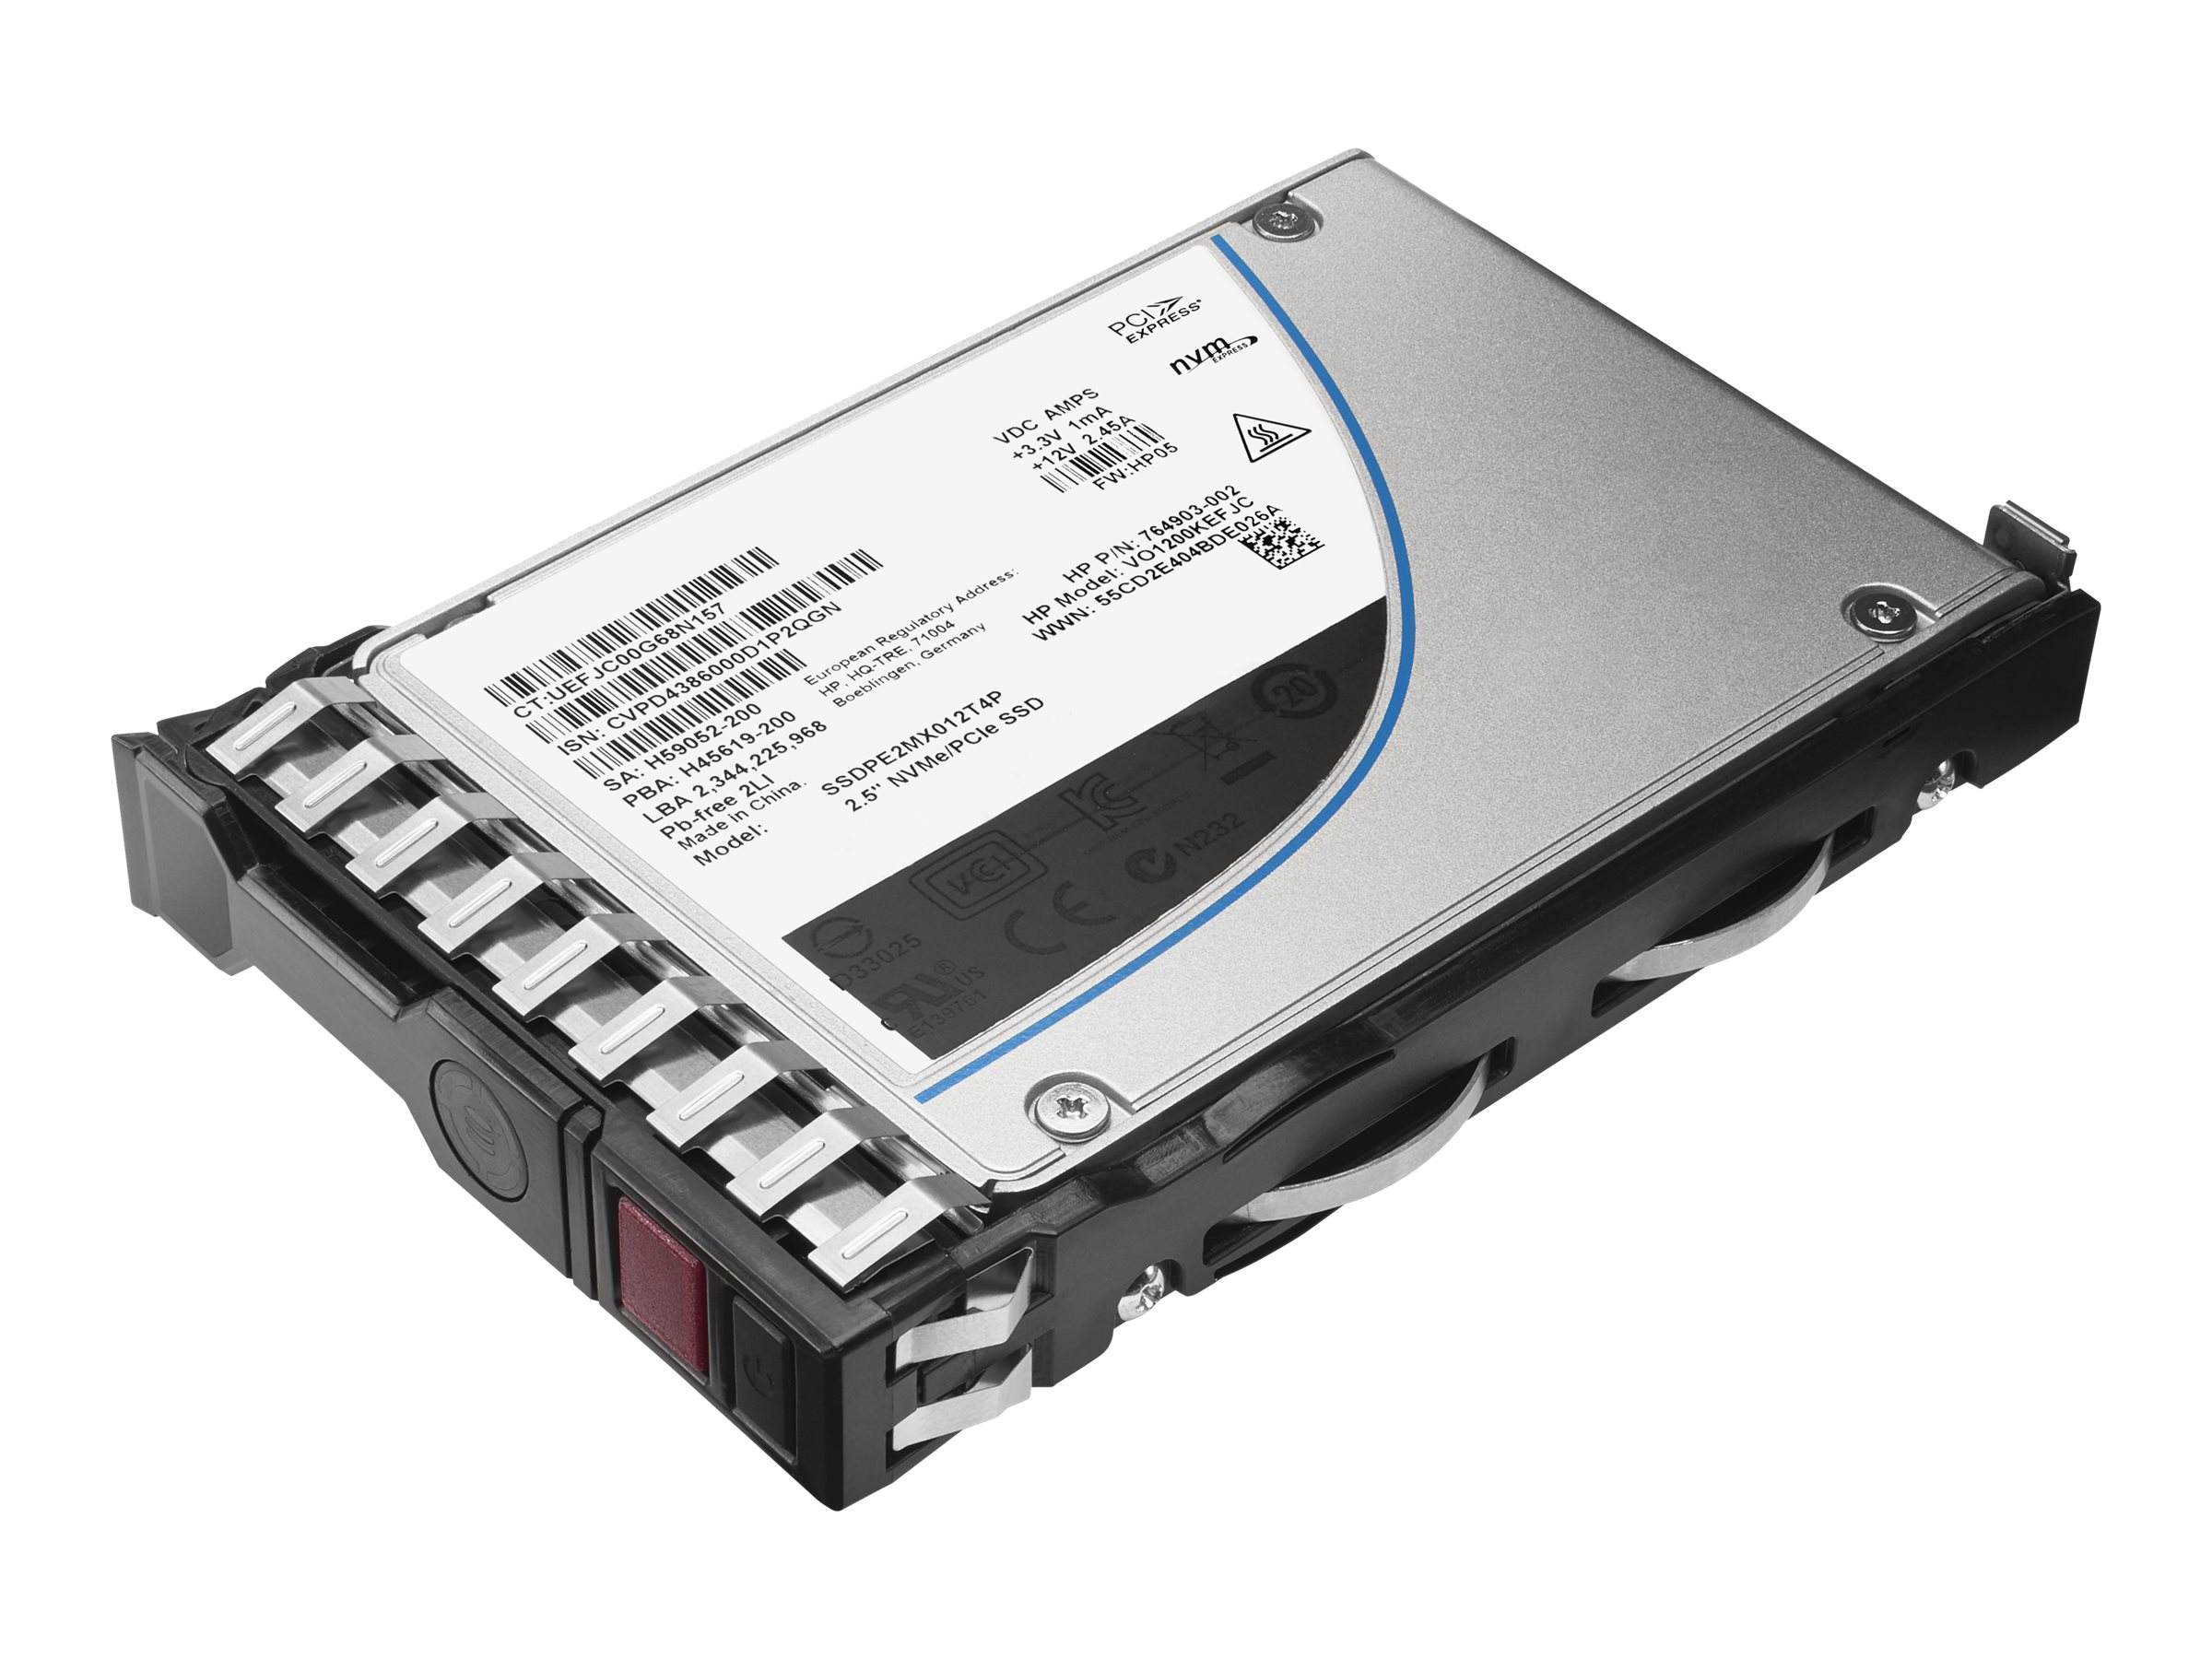 HPE 400GB SAS 12Gb s Mainstream Endurance 2.5 Enterprise Mainstream SC H2 Solid State Drive for G7